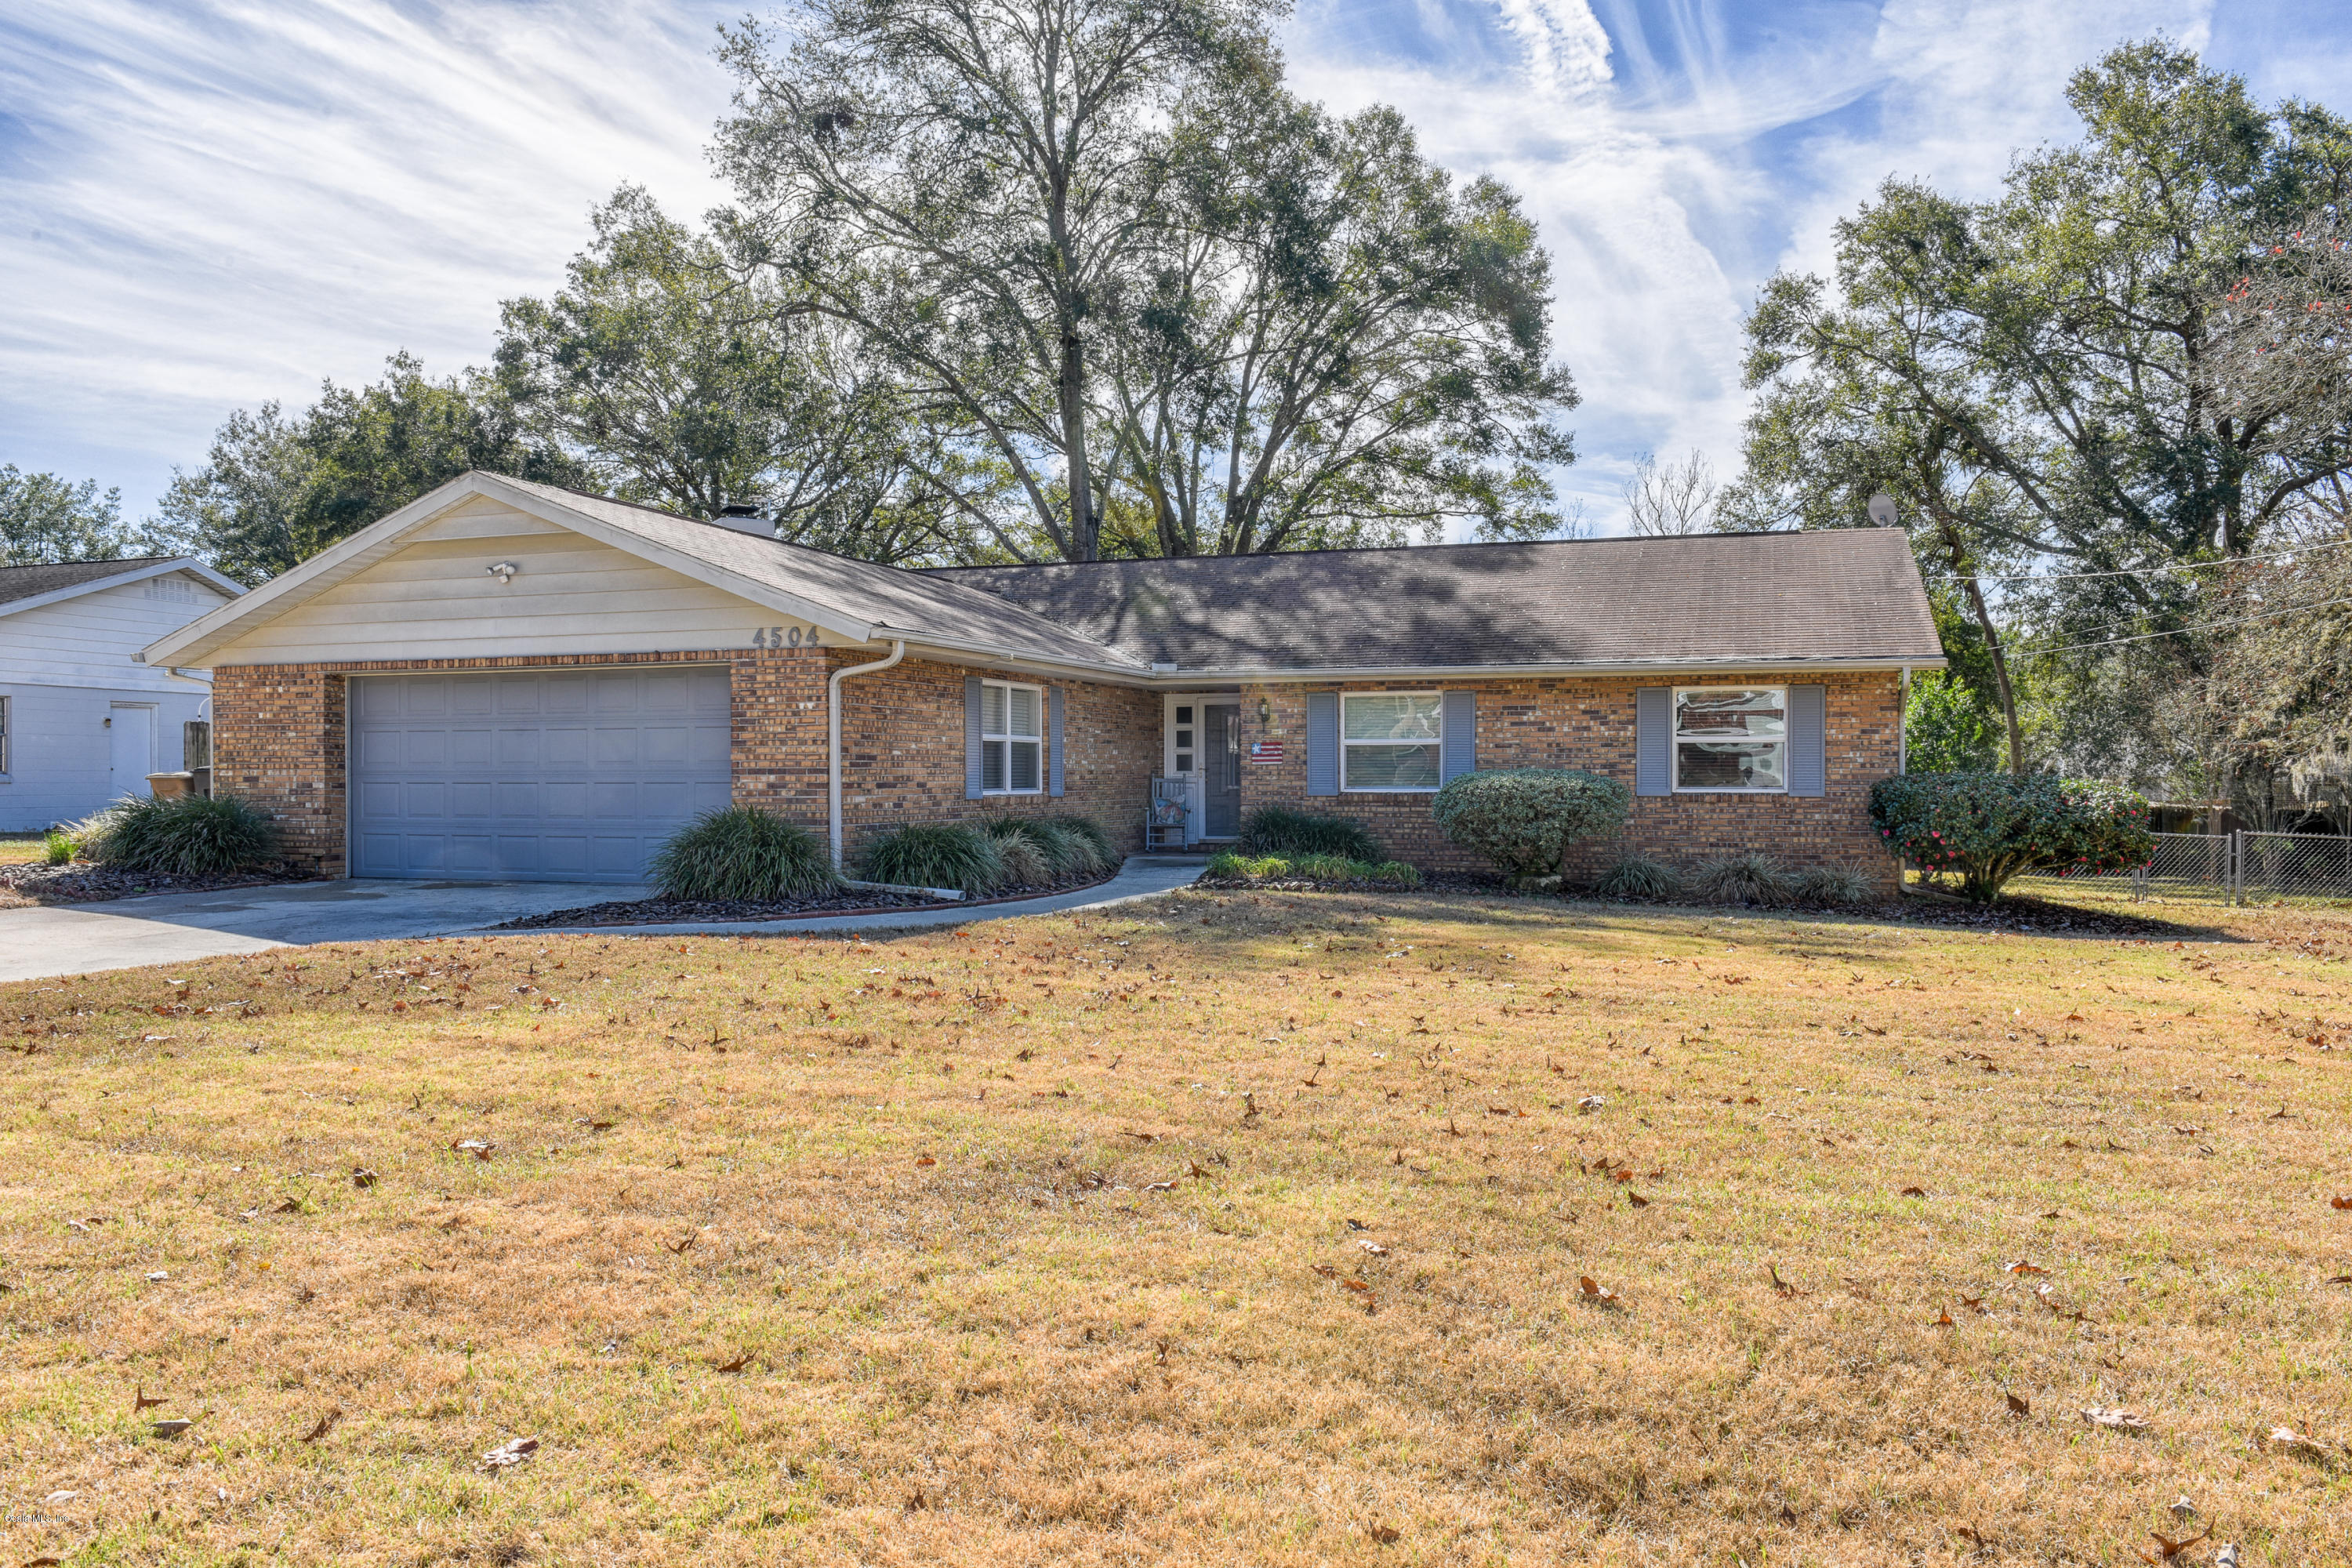 4504 SE 11TH PLACE, OCALA, FL 34471